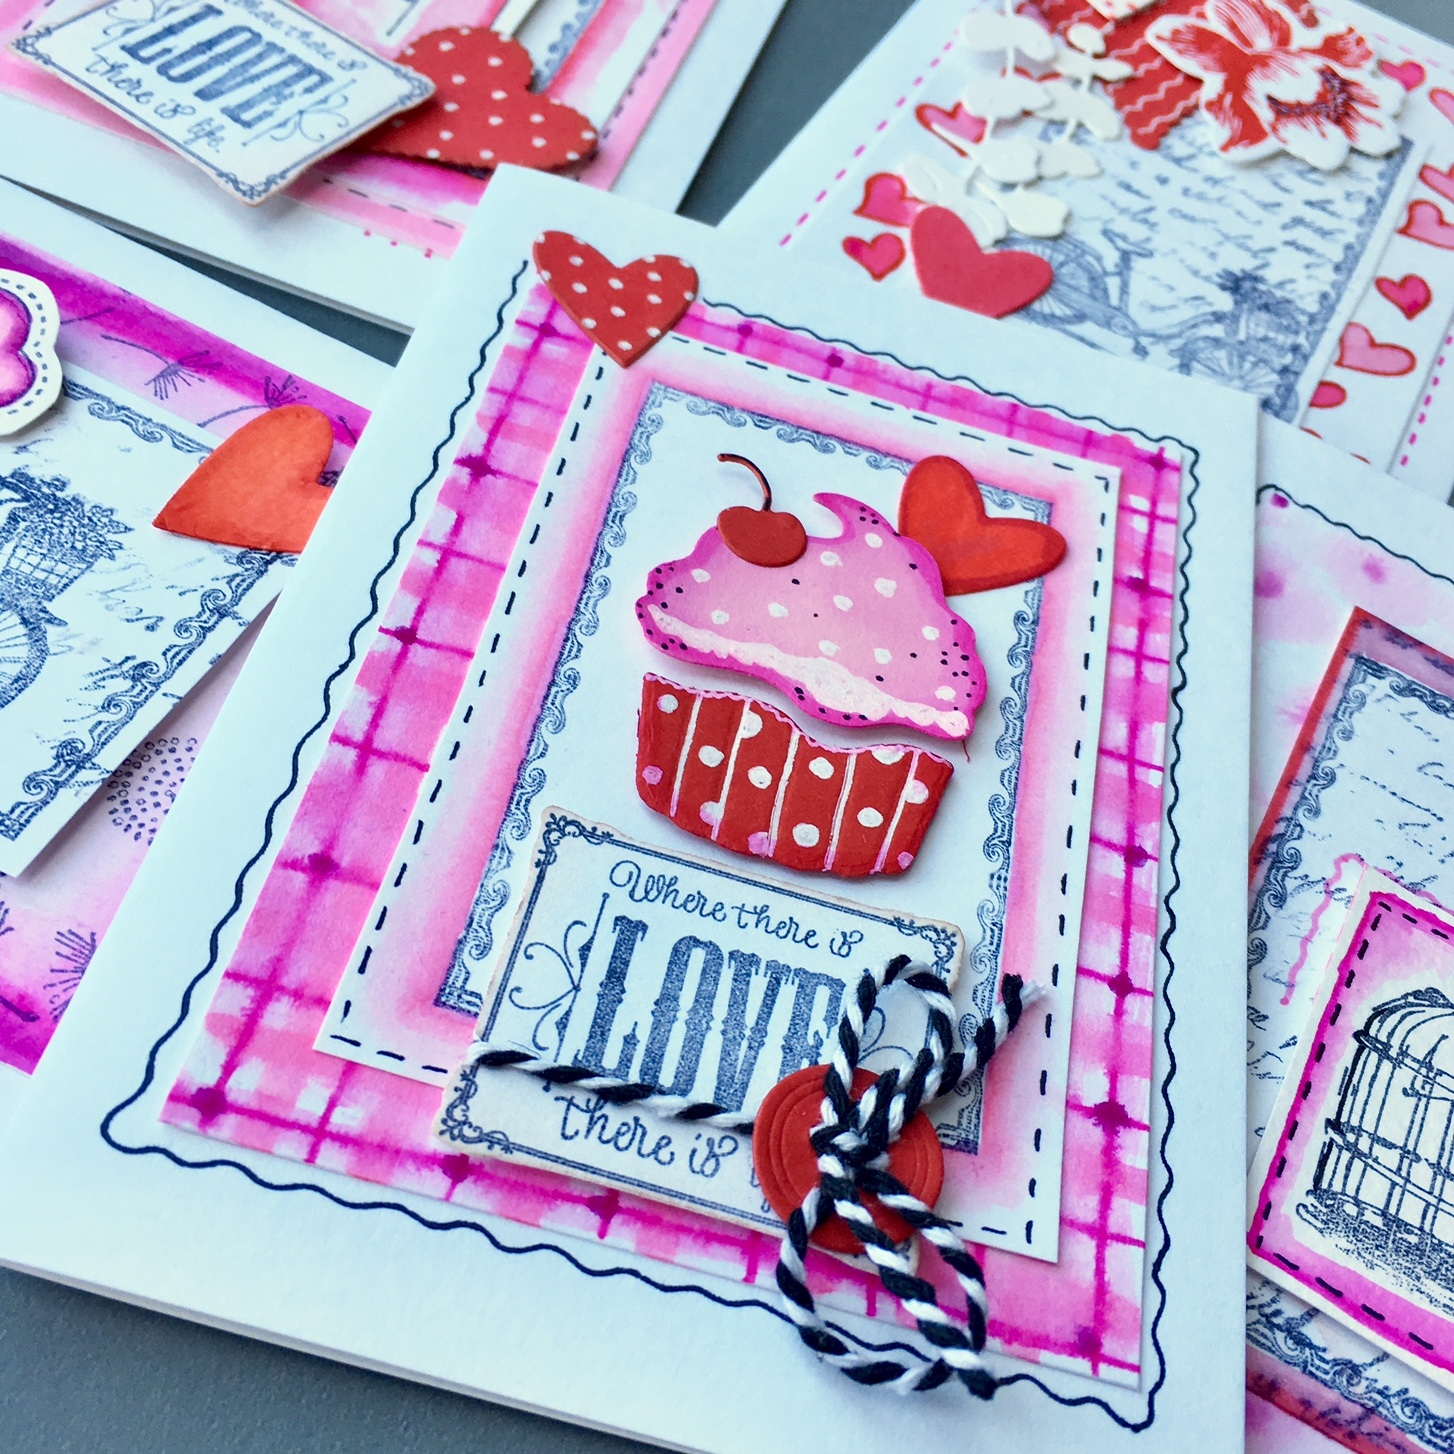 Valentine's greeting cards, made following Capsule craft philosophy